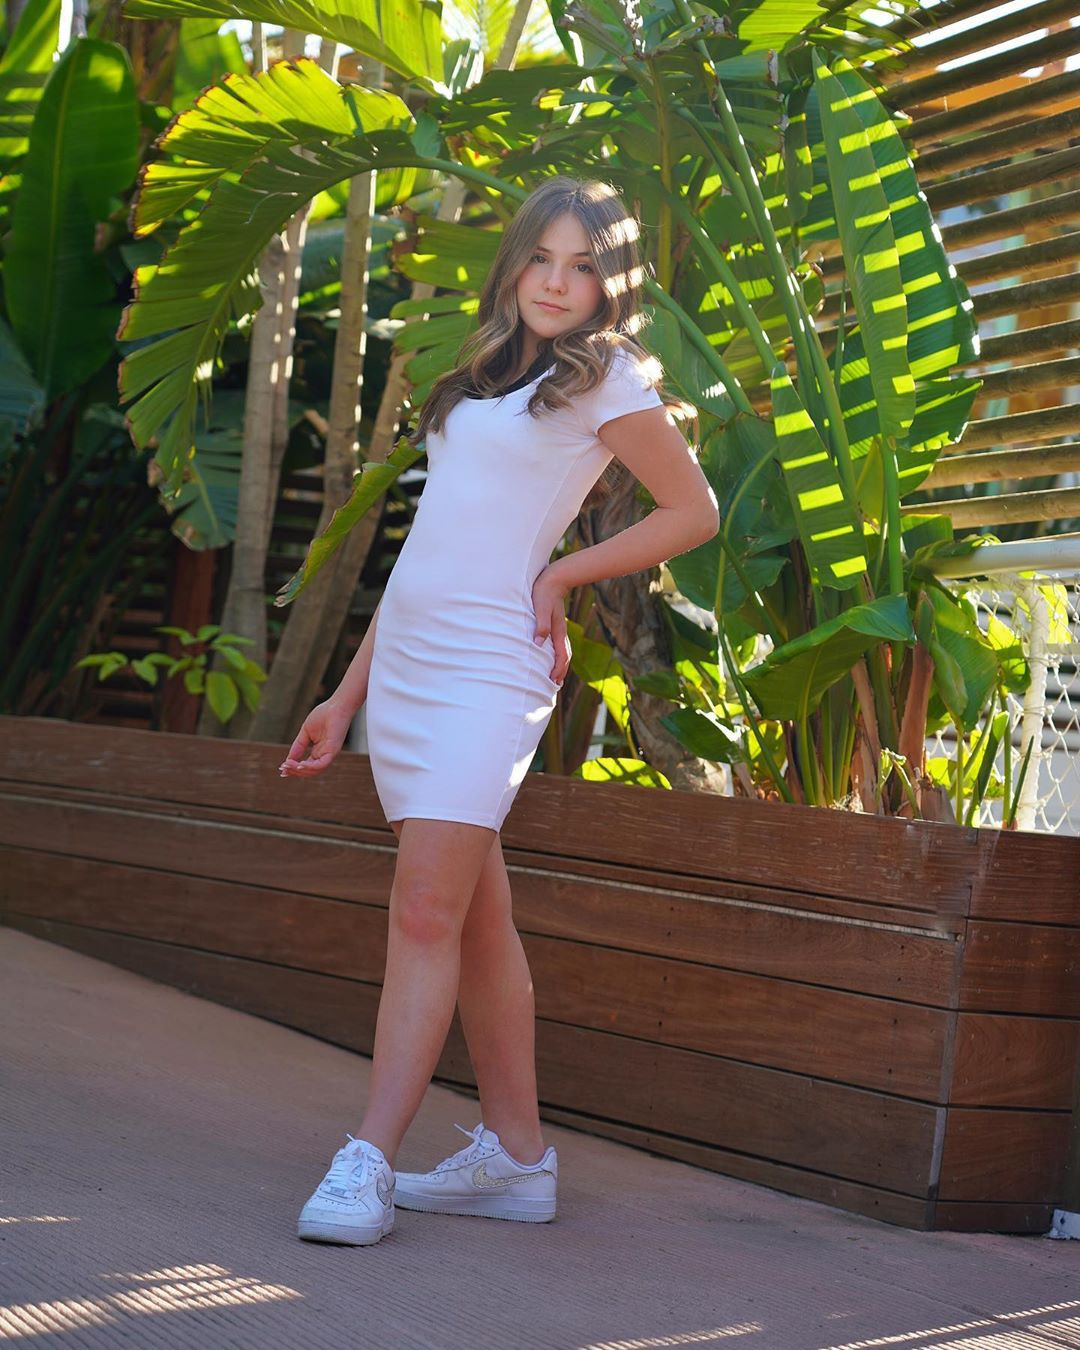 Piper Rockelle shorts dresses ideas, photography ideas, legs photo